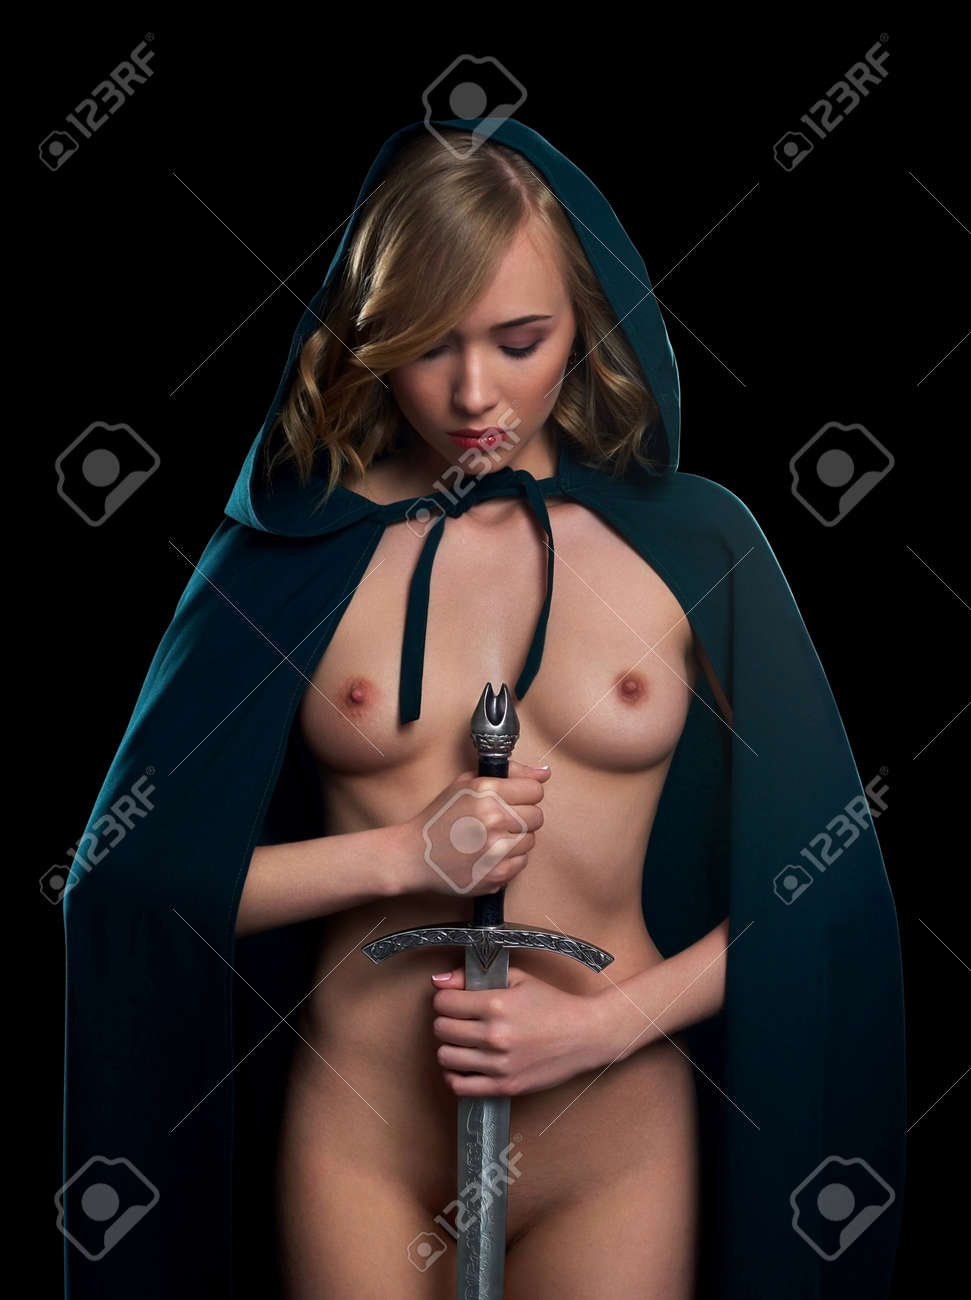 Naked women sword fighting image